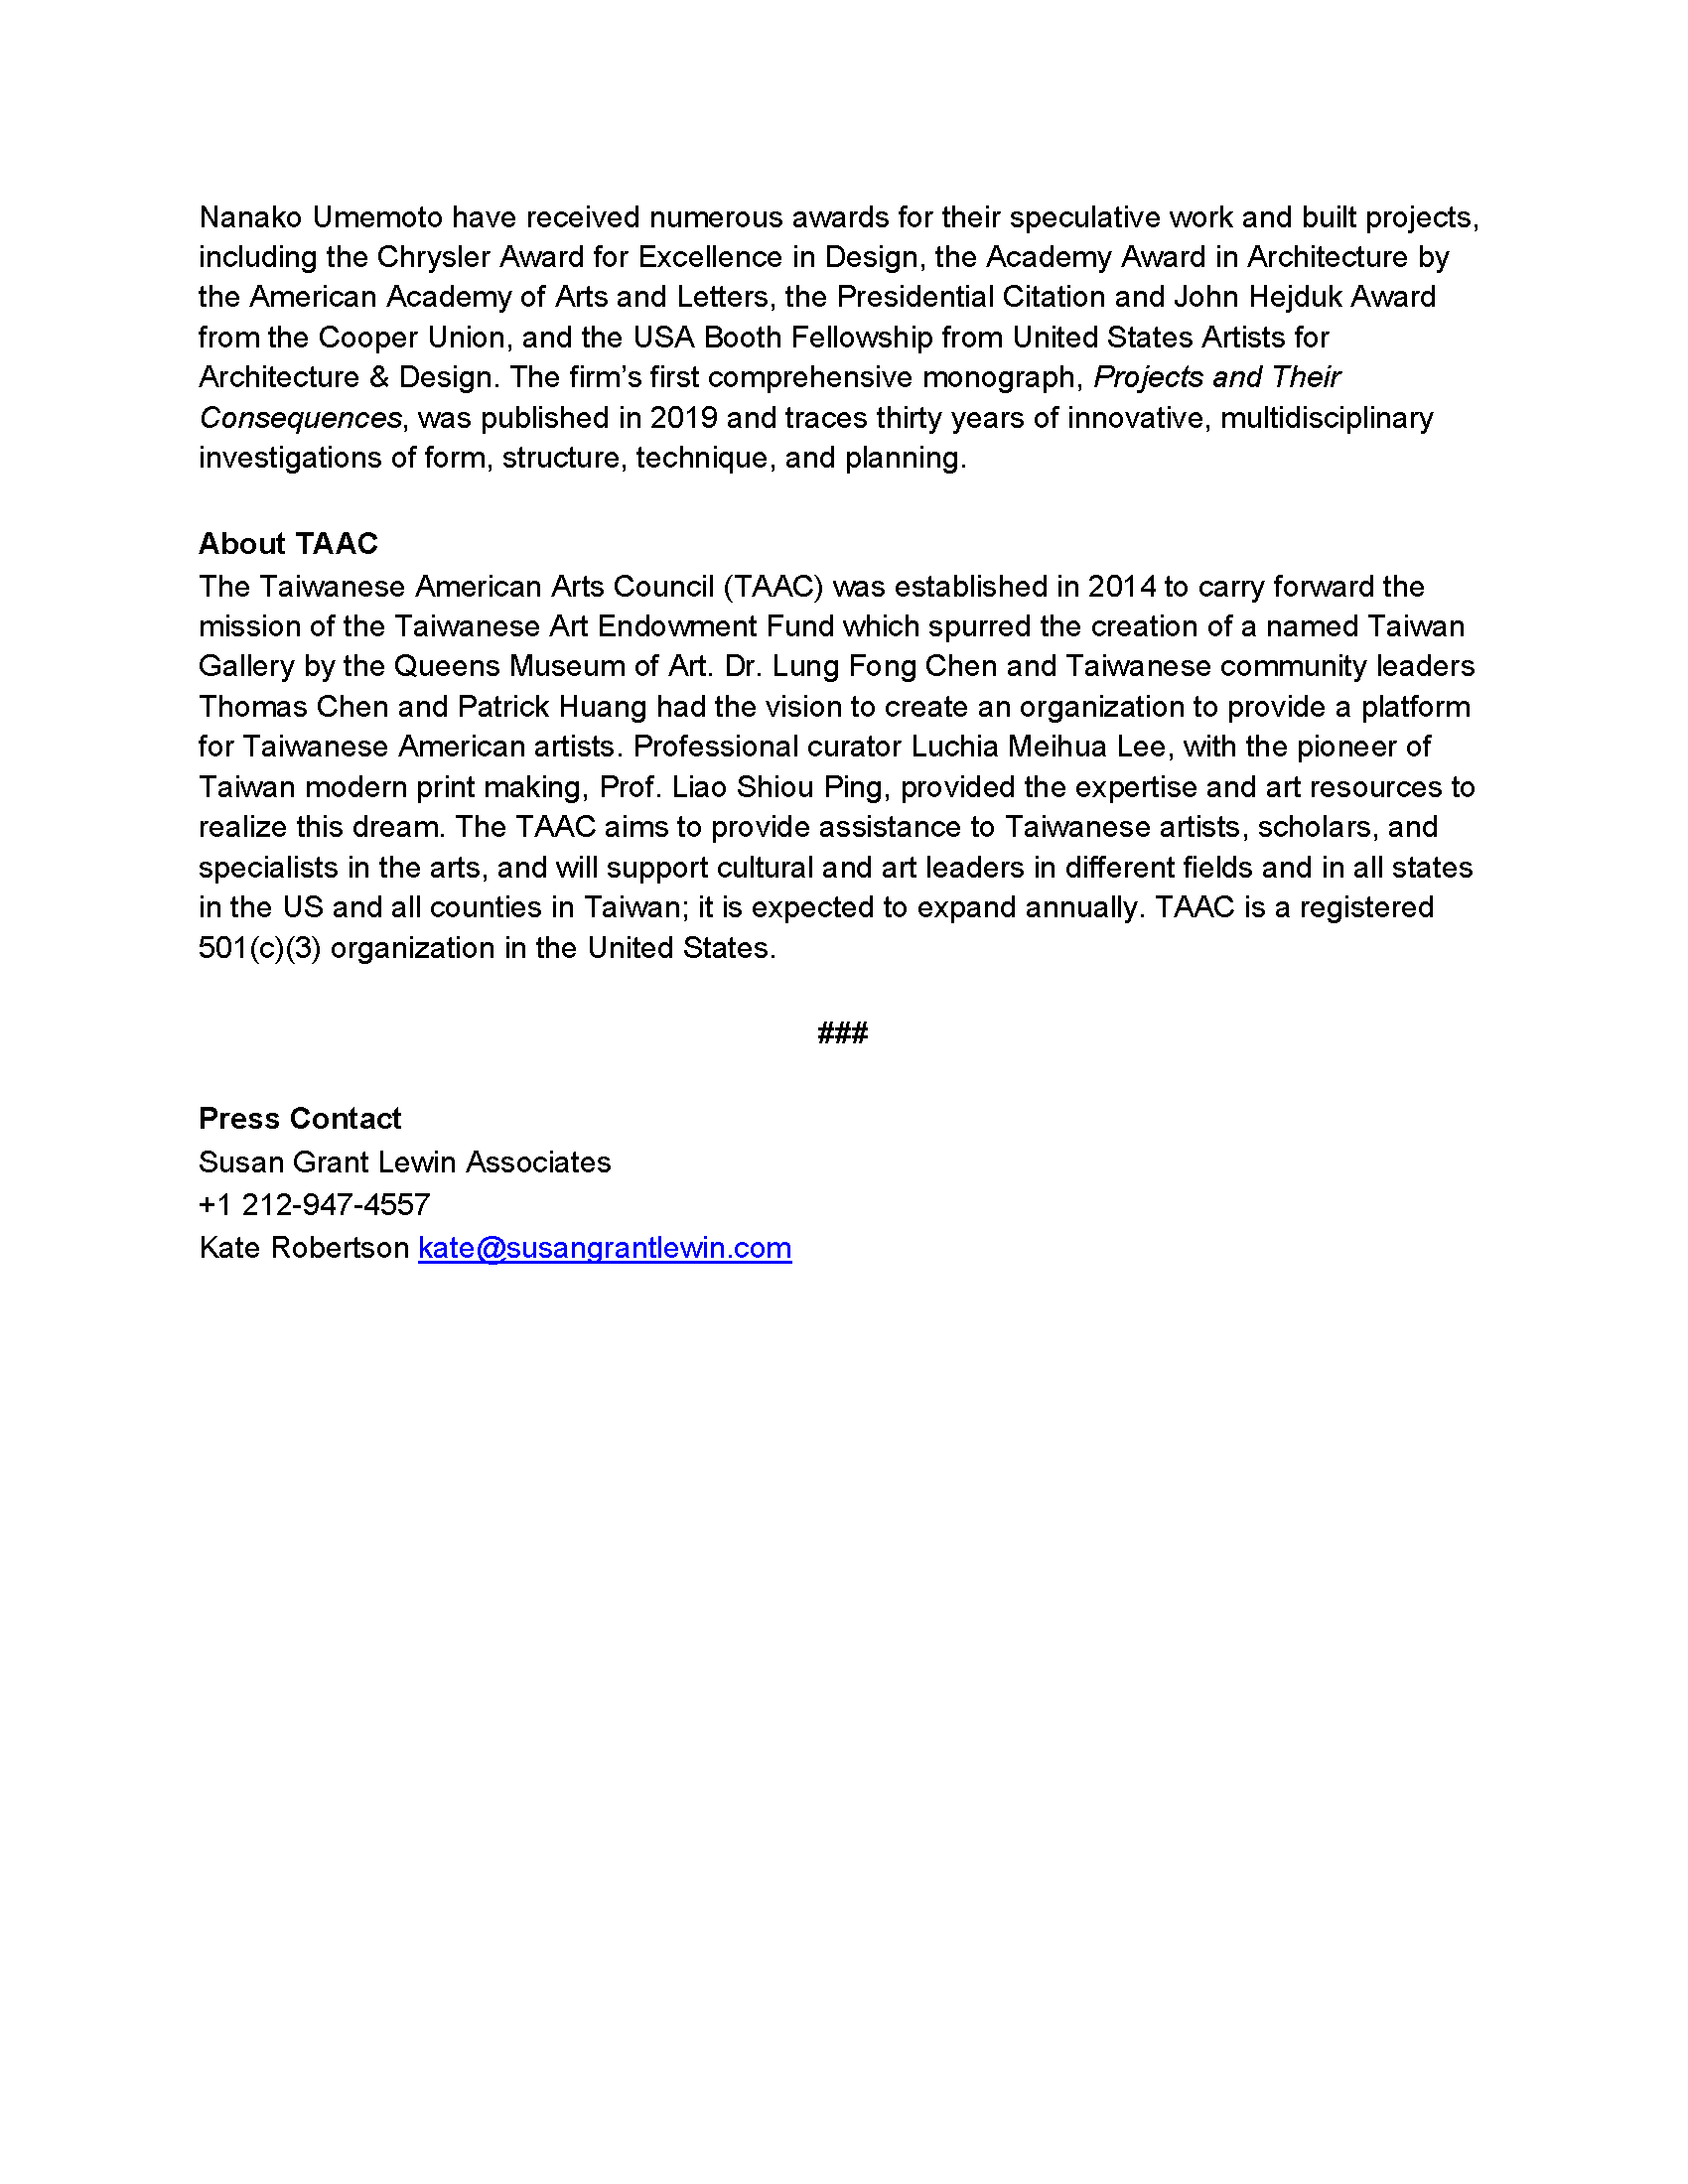 0901 Press Release-AUG 31 Building Beyond Place_ RUR Engages Taiwan's Architectural Cosmopolitanism (1)_Page_3.png